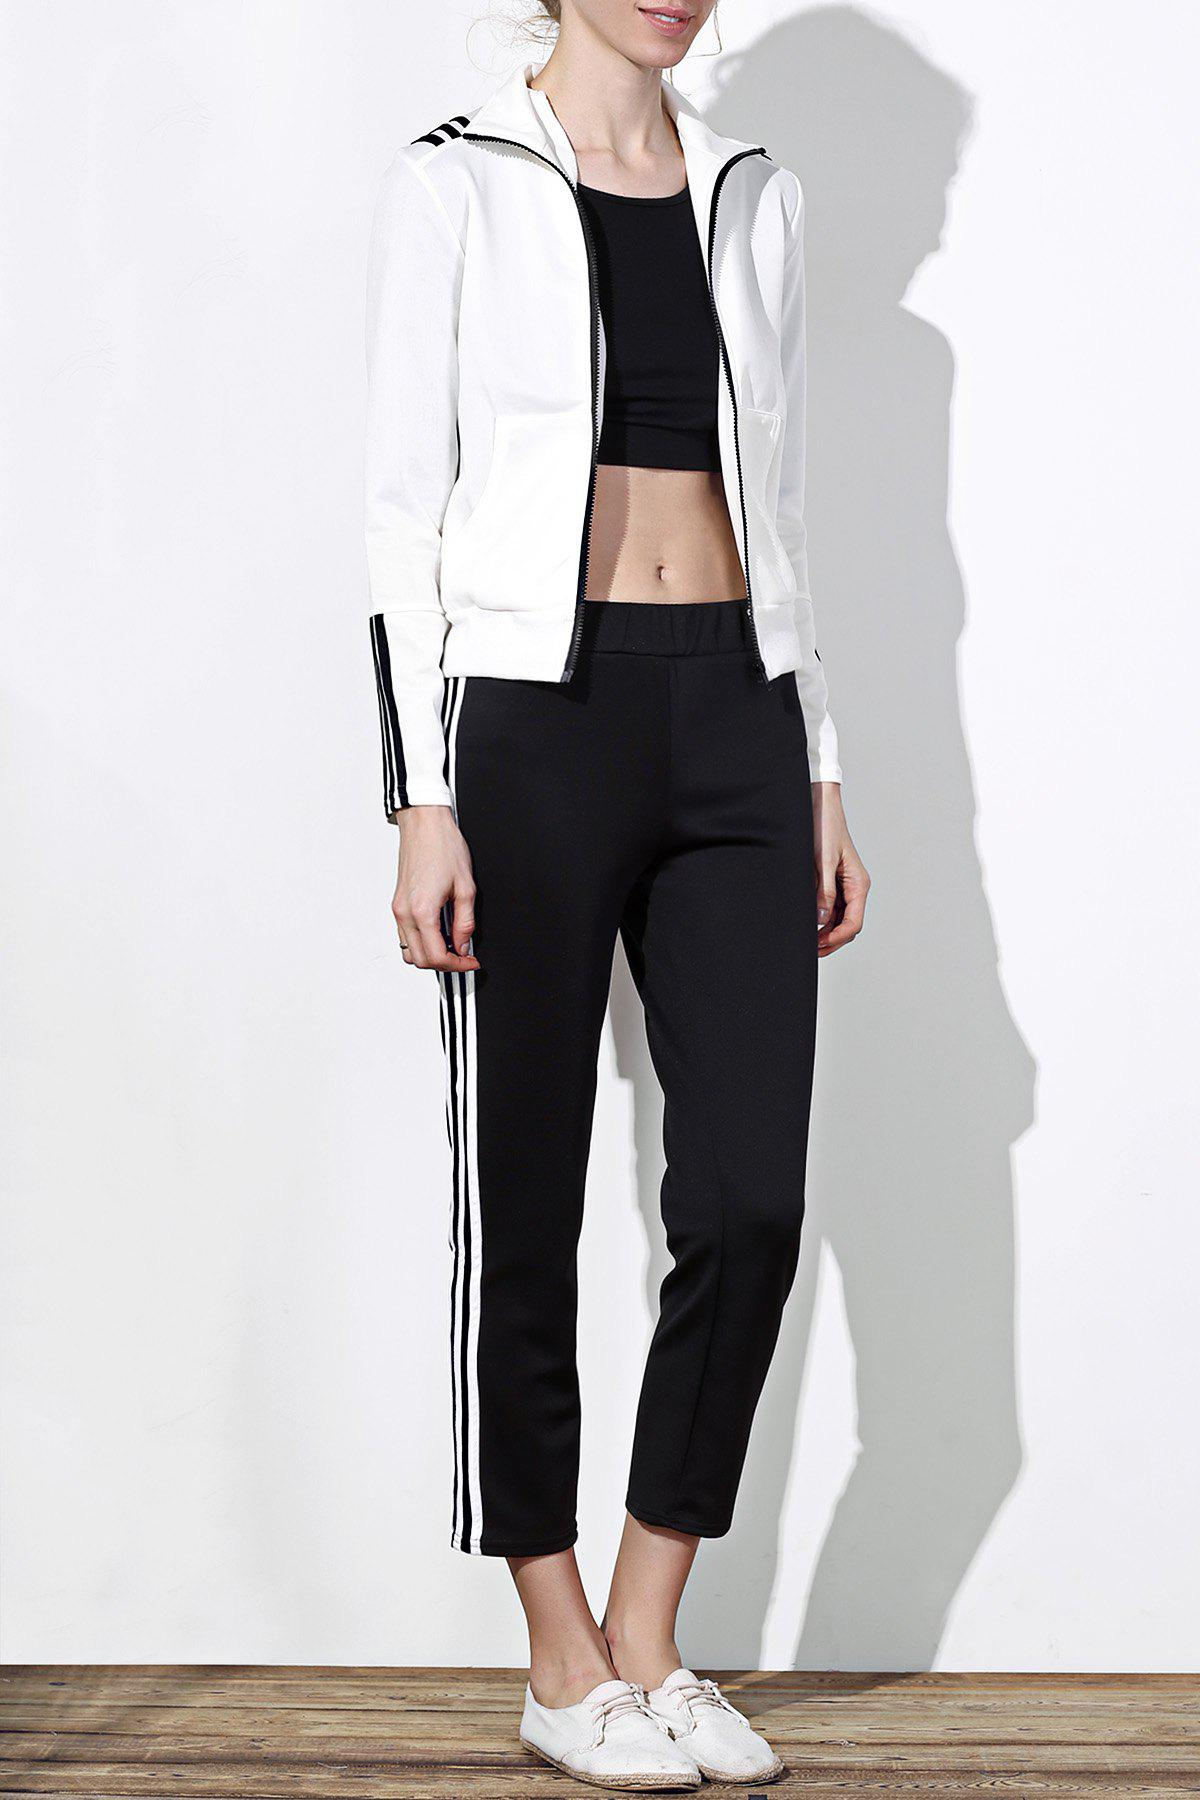 Active Long Sleeve Stand-Up Collar Striped Jacket + Mid-Waisted Pants Women's Twinset - WHITE/BLACK S